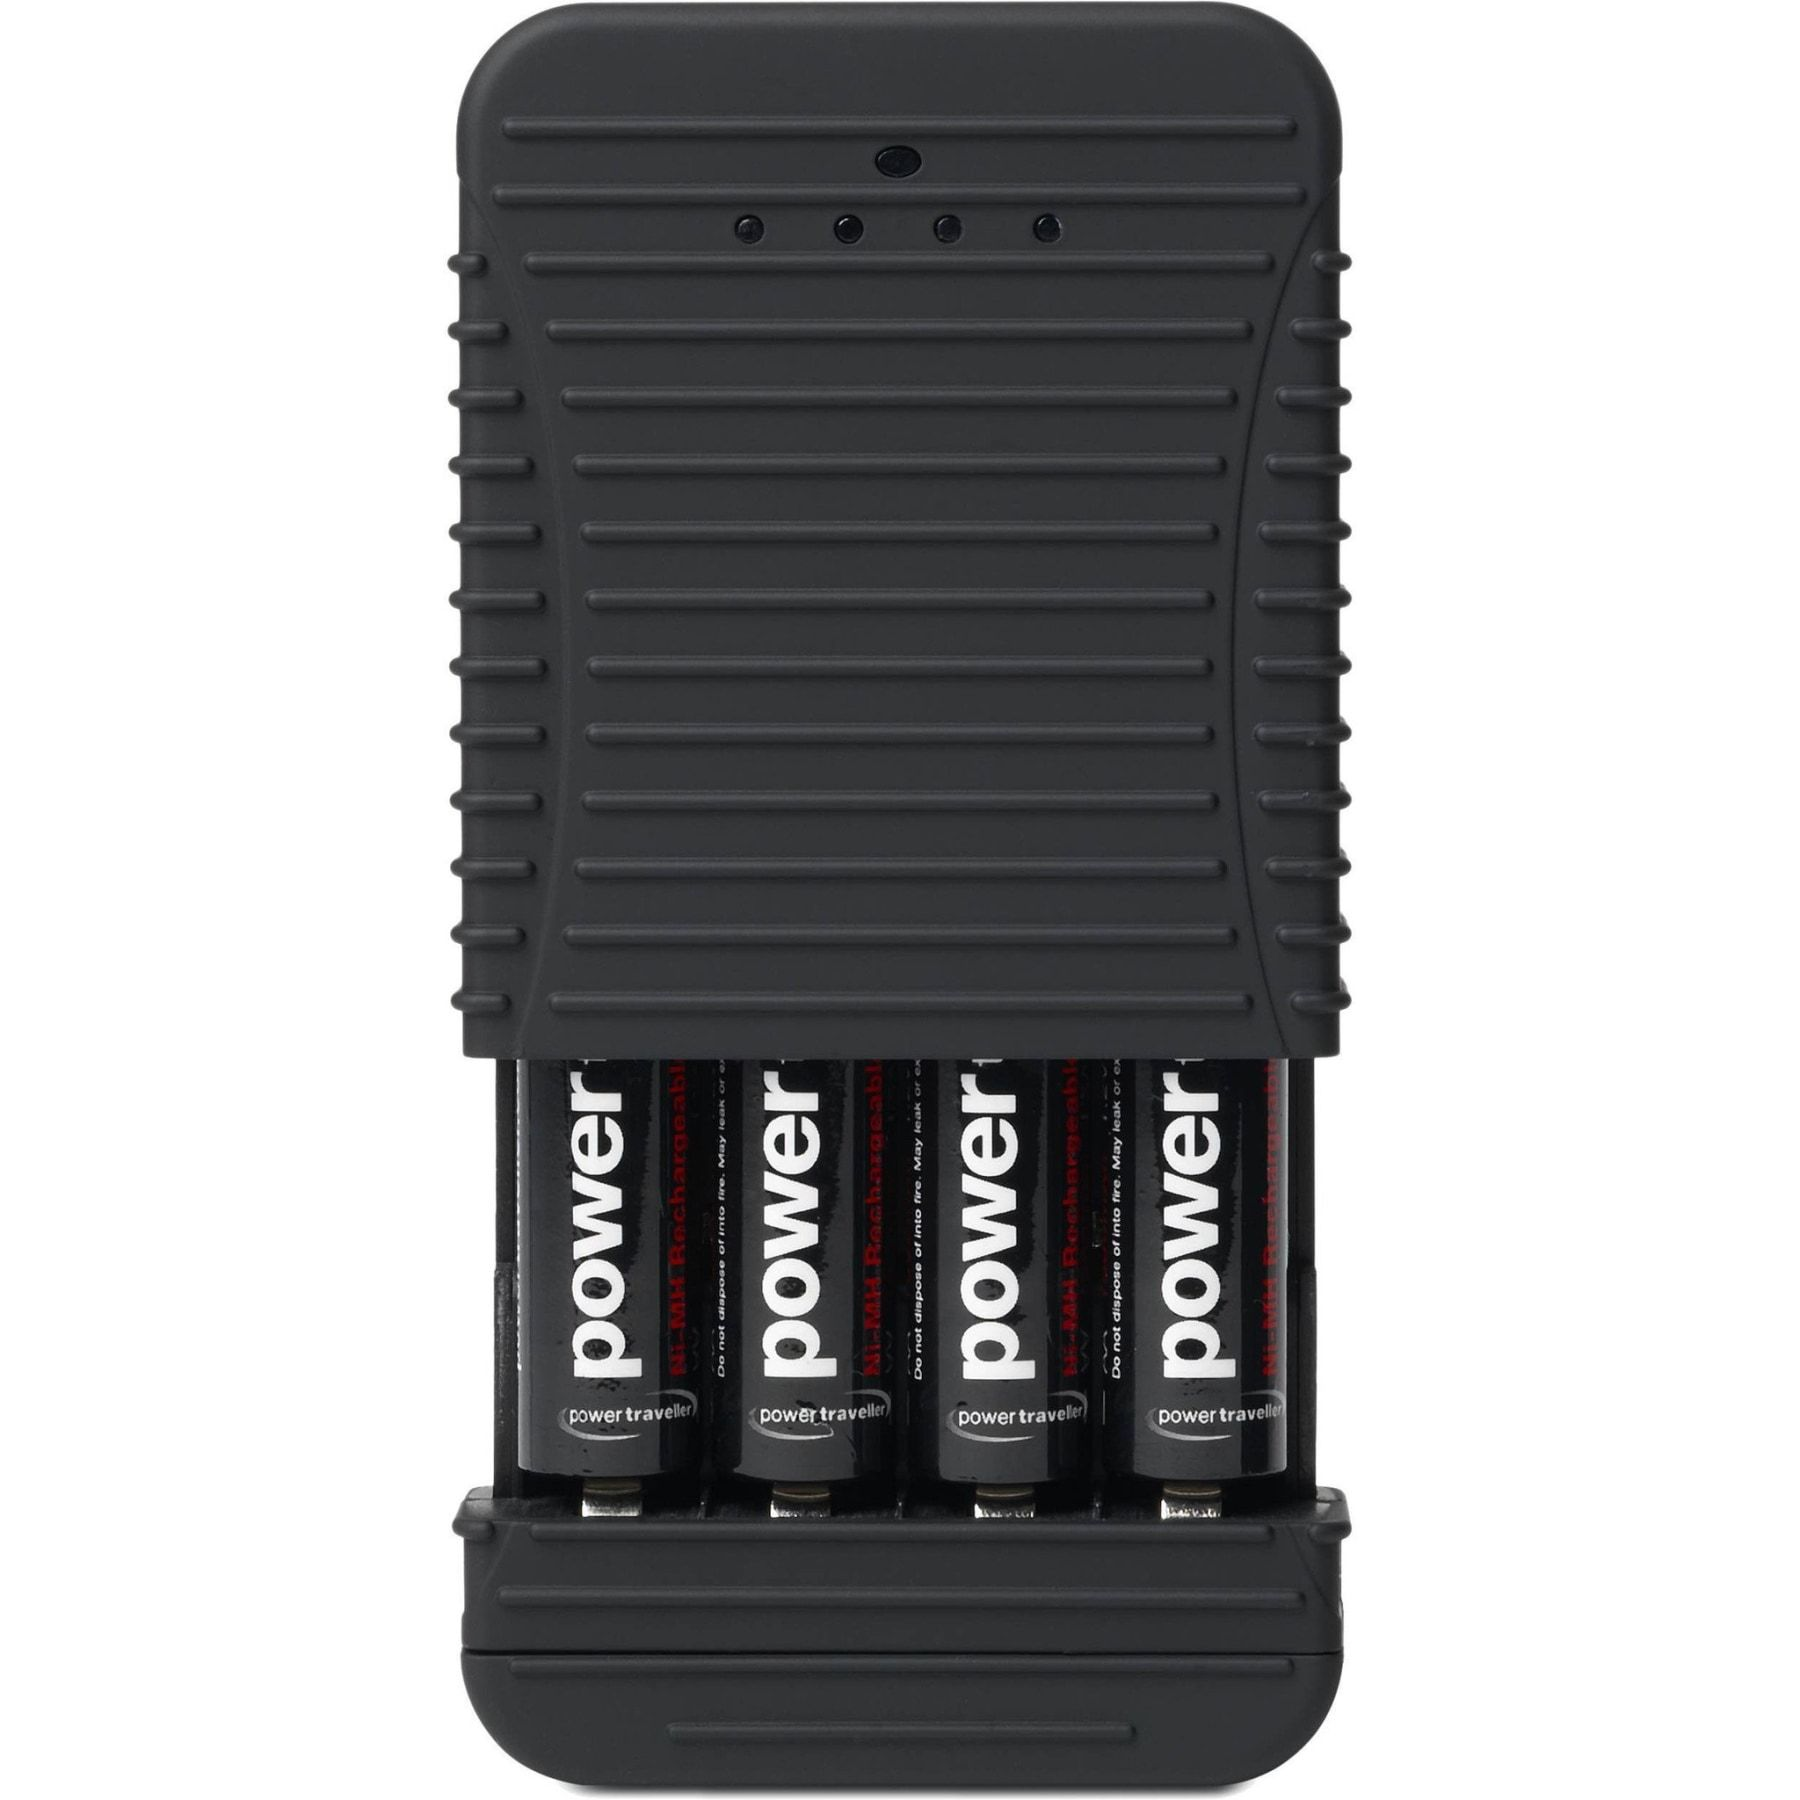 POWERCHIMP 4A PORTABLE AA/AAA BATTERY CHARGER WITH BATTERIES - CLEARANCE